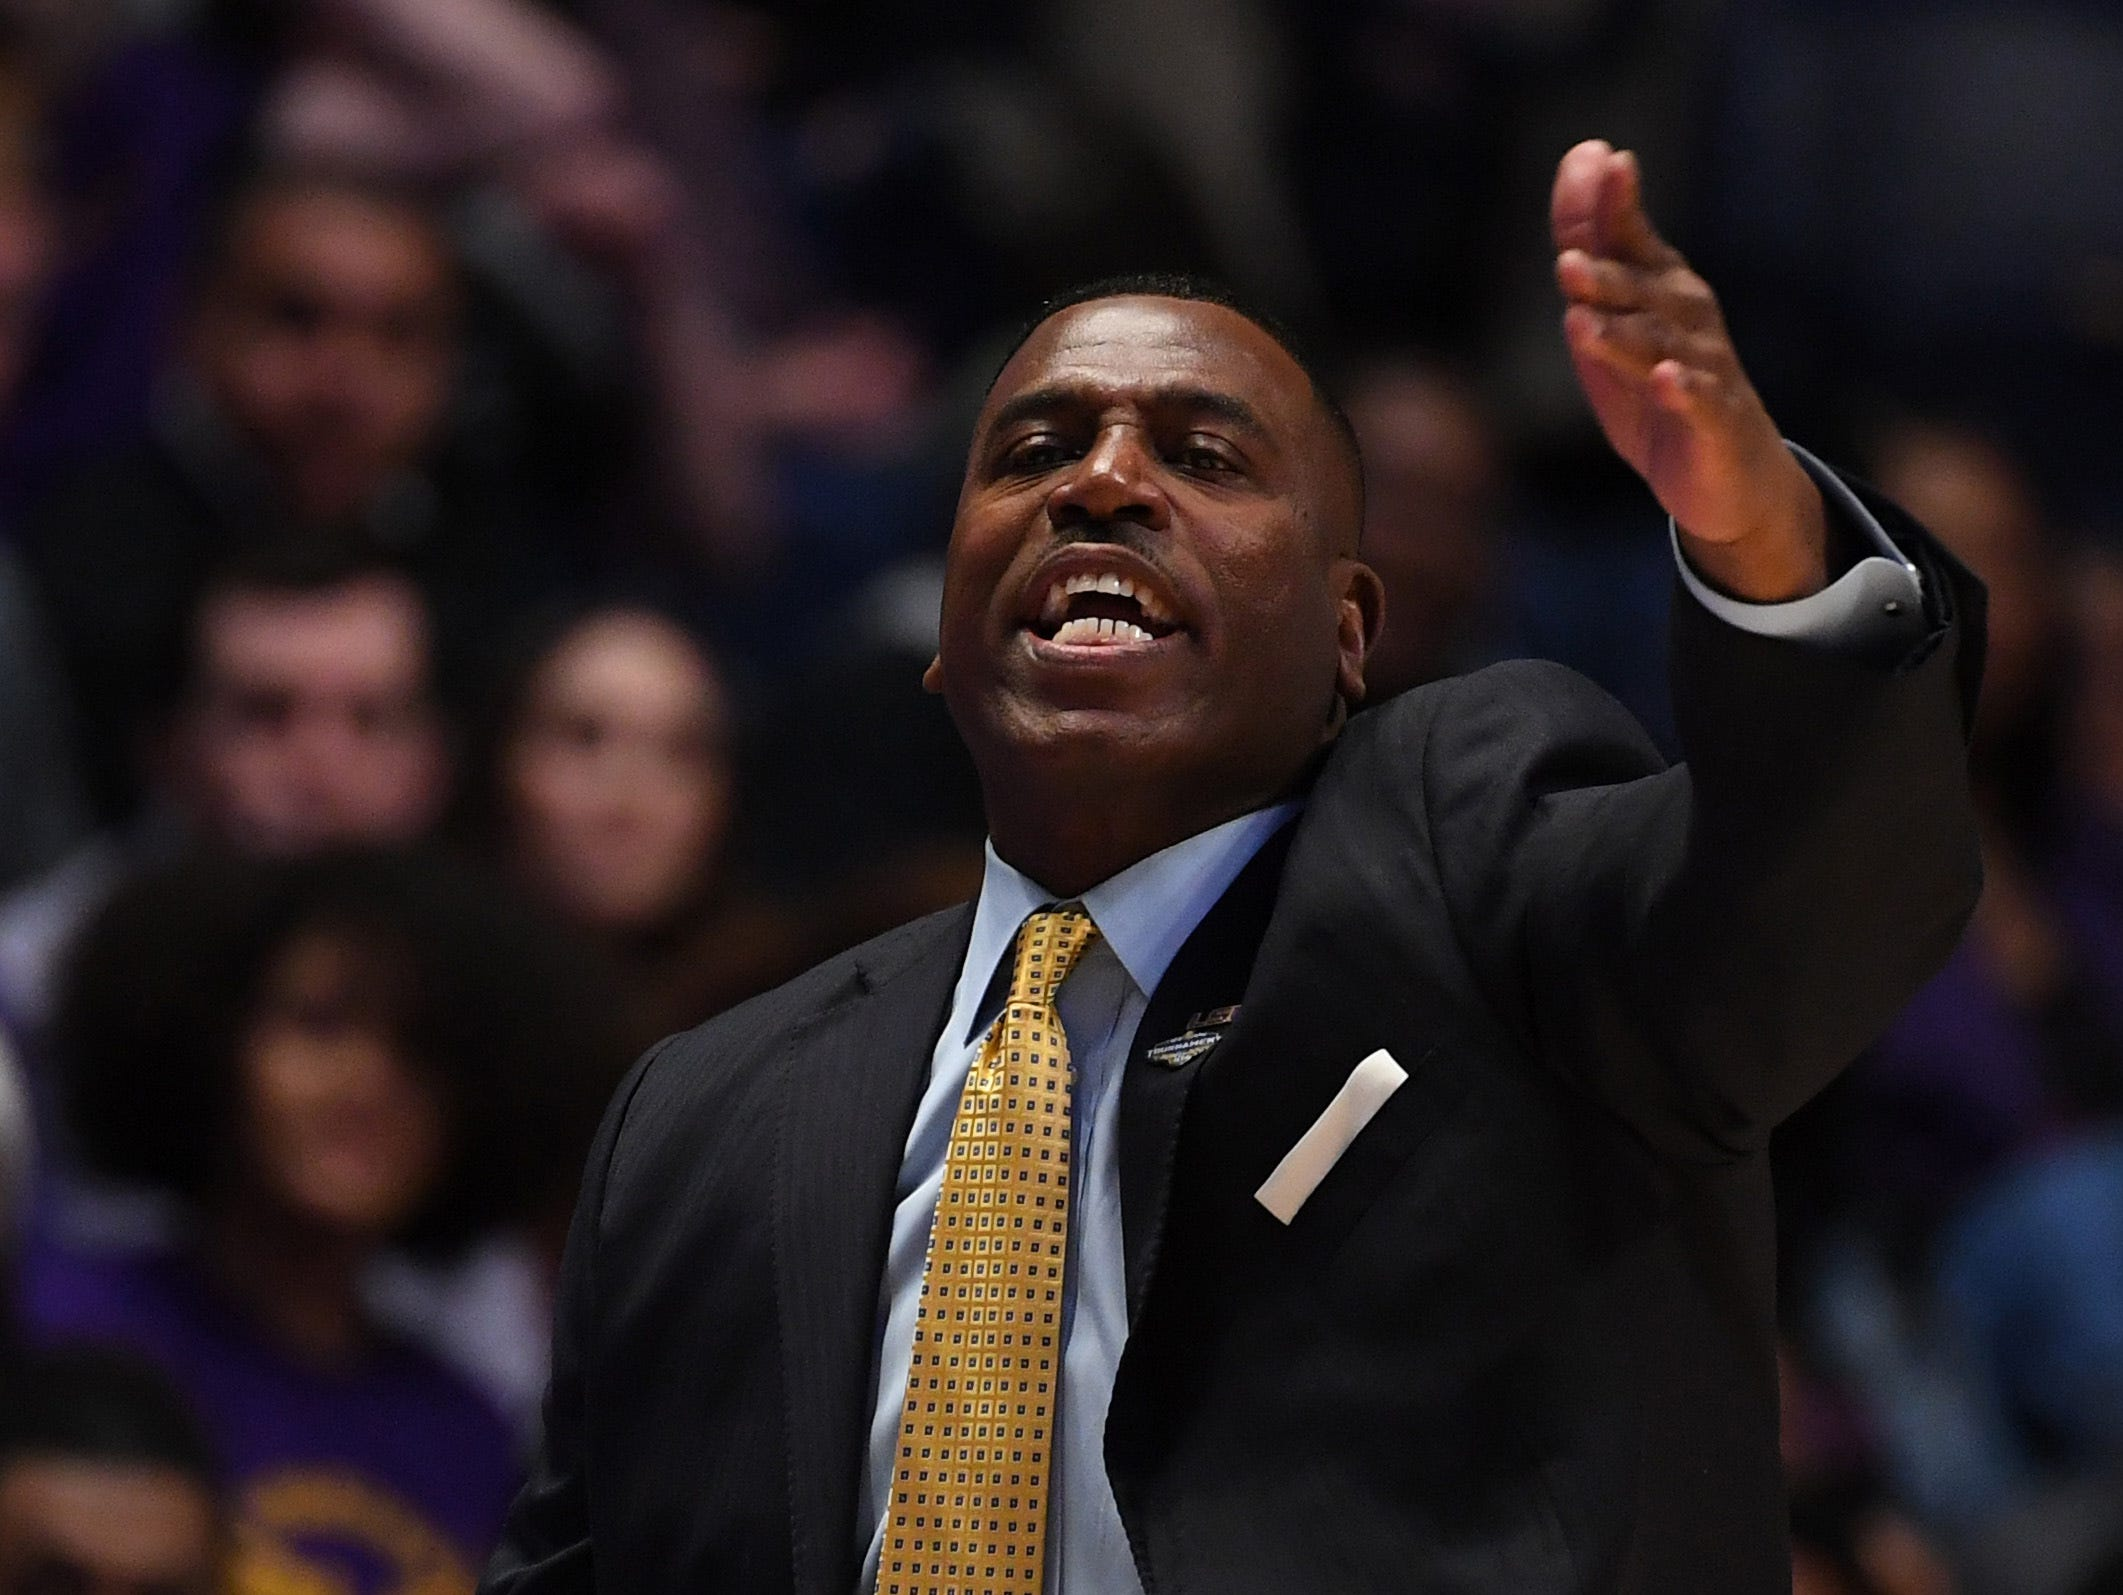 Mar 15, 2019; Nashville, TN, USA; LSU Tigers interim head coach Tony Benford reacts on the sidelines against the Florida Gators during the first half of the SEC conference tournament at Bridgestone Arena. Mandatory Credit: Christopher Hanewinckel-USA TODAY Sports